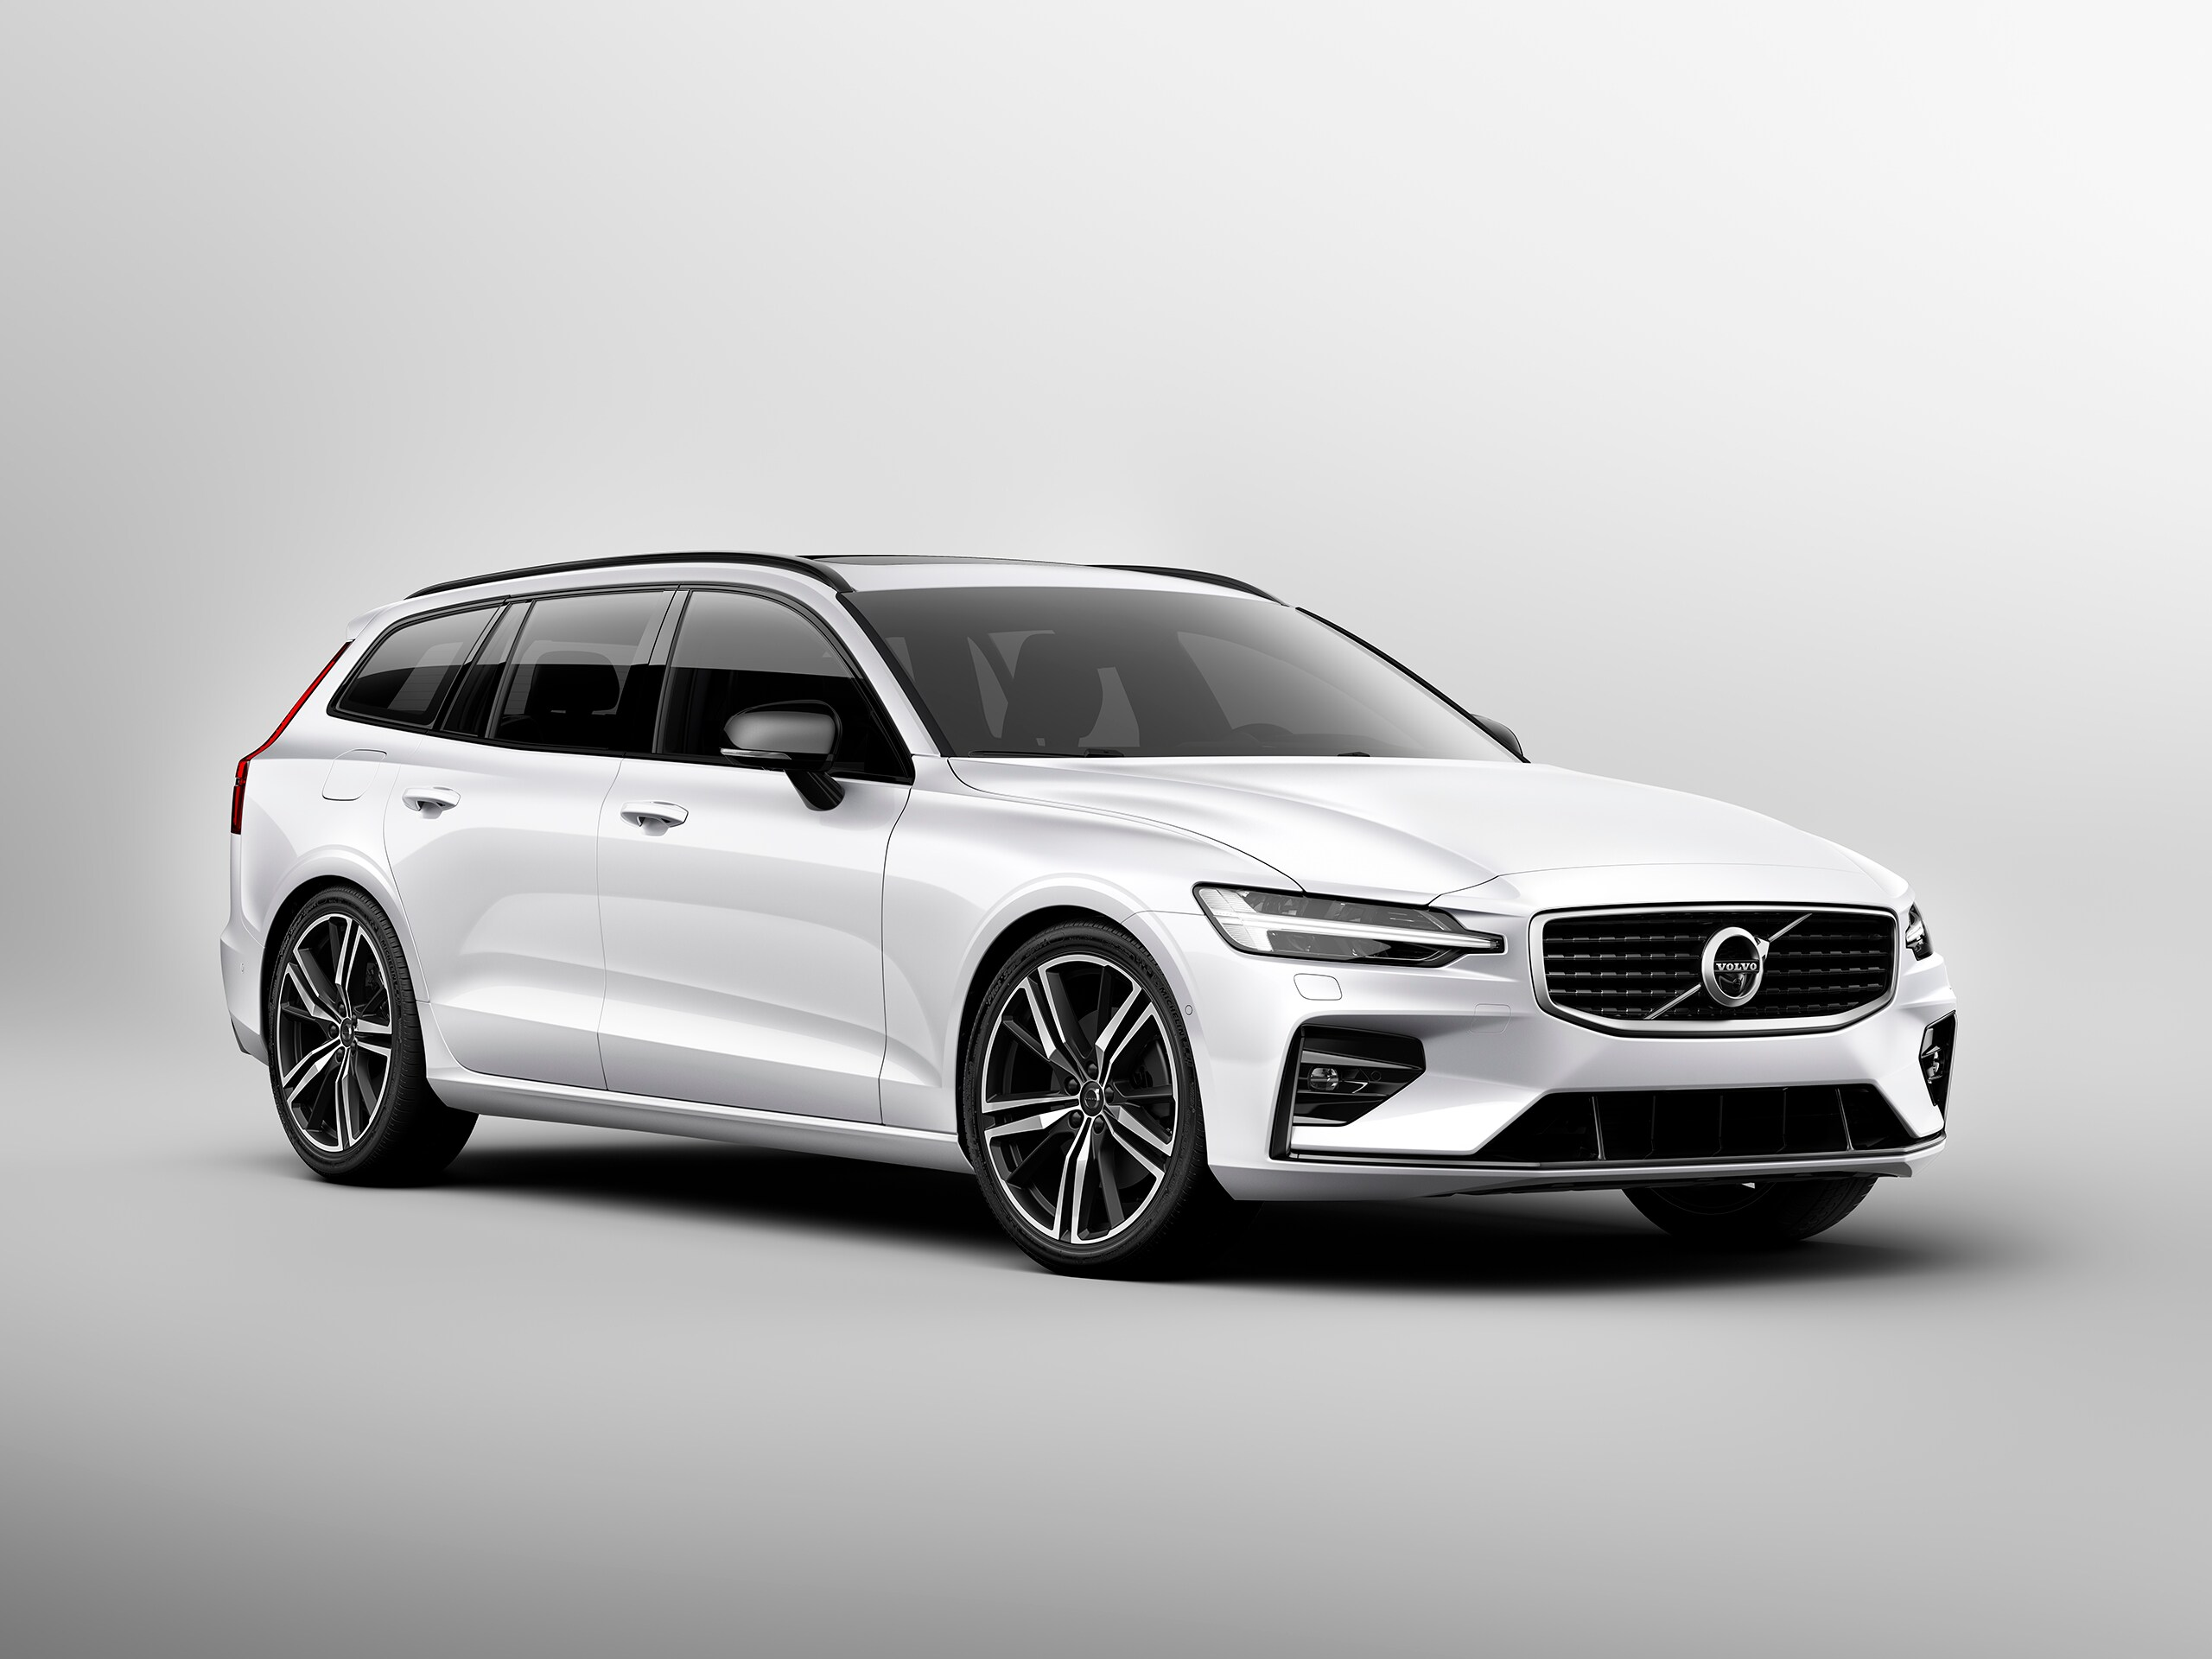 Studio image of the Volvo V60 R-Design